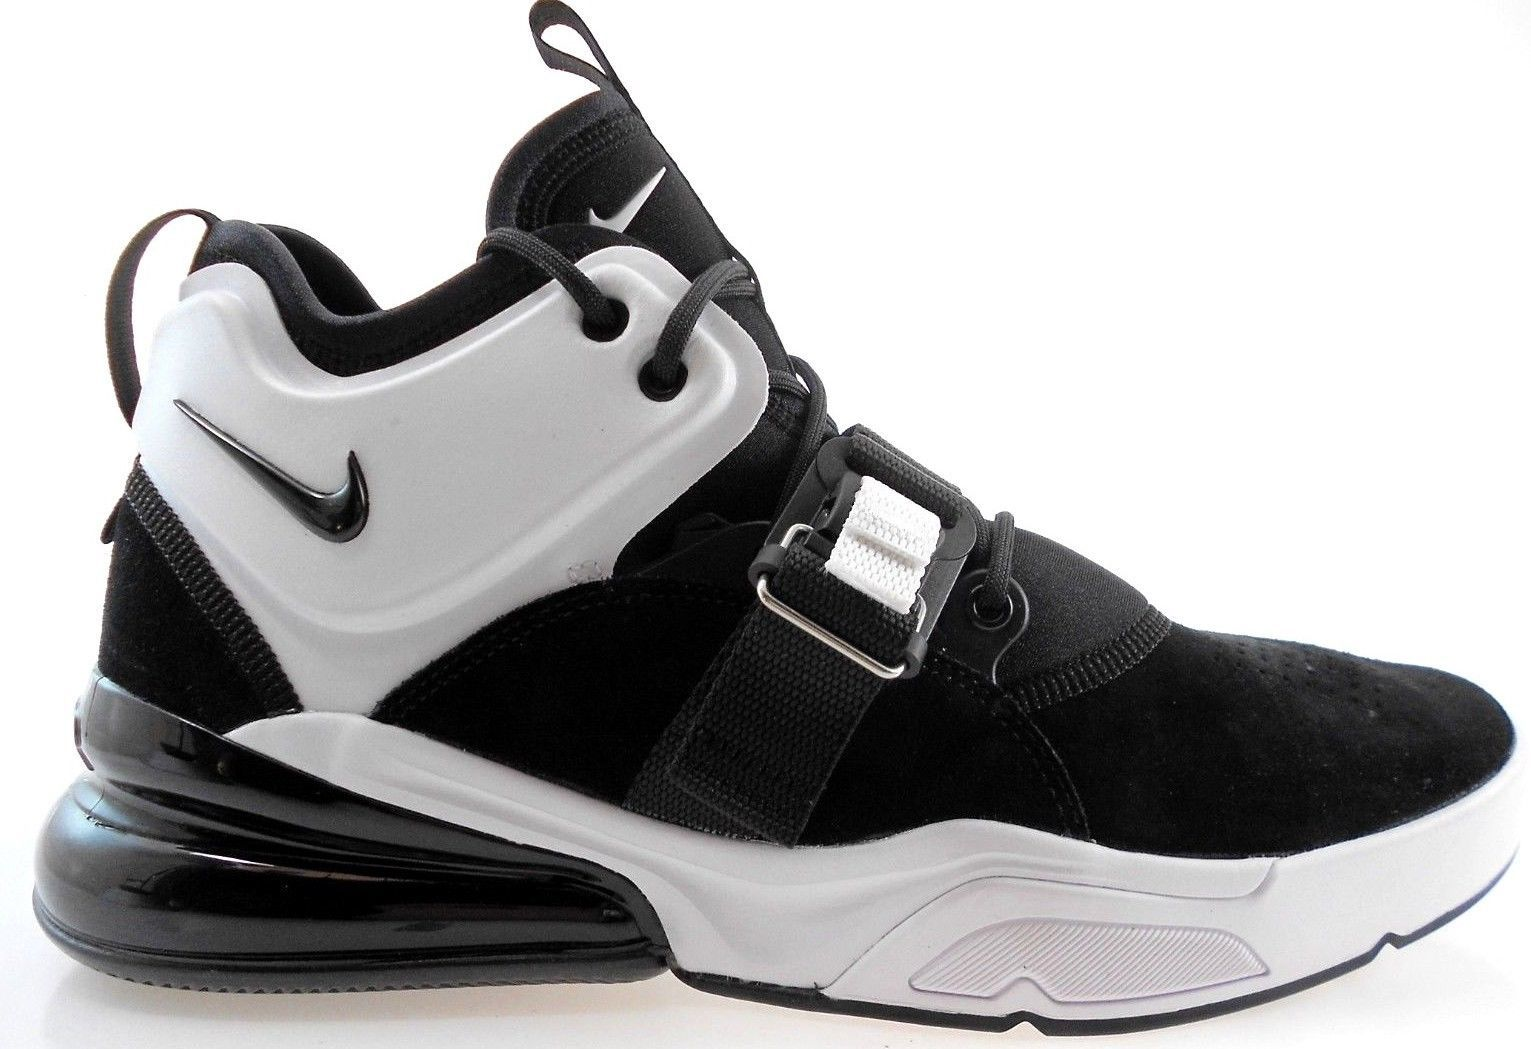 newest collection 90788 5df66 NIKE AIR FORCE 270 MENS BLACKWHITE SHOES, AH6772-006 - 119.99